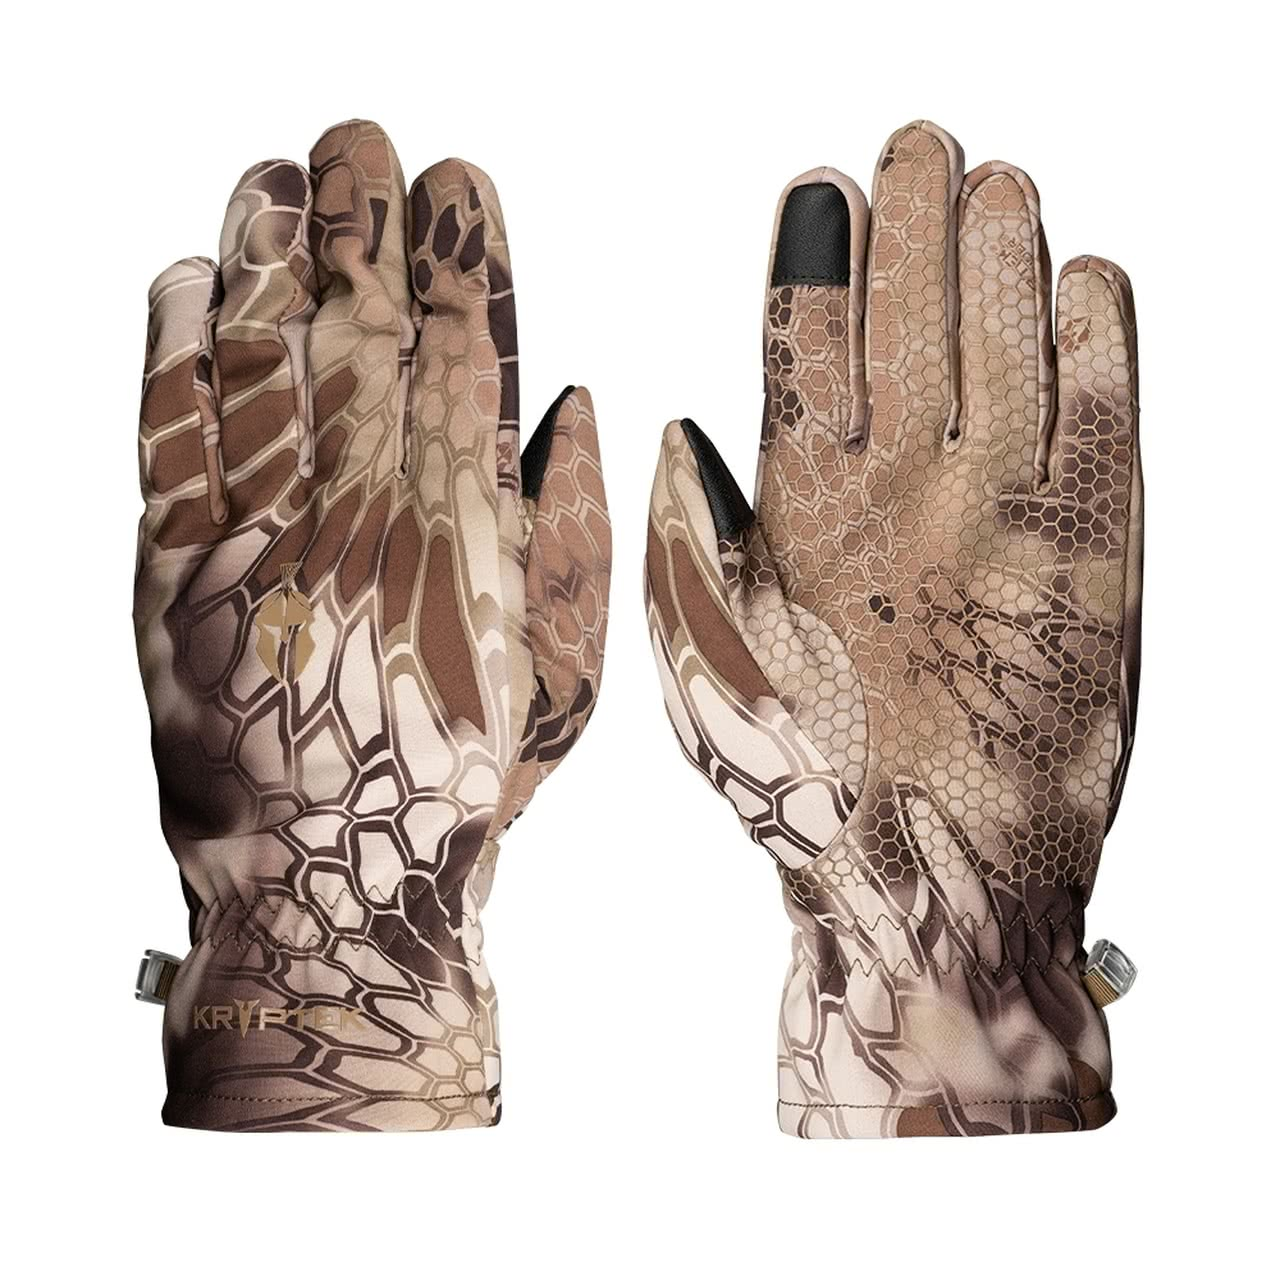 kryptek gloves dalibor collection dalibor glove